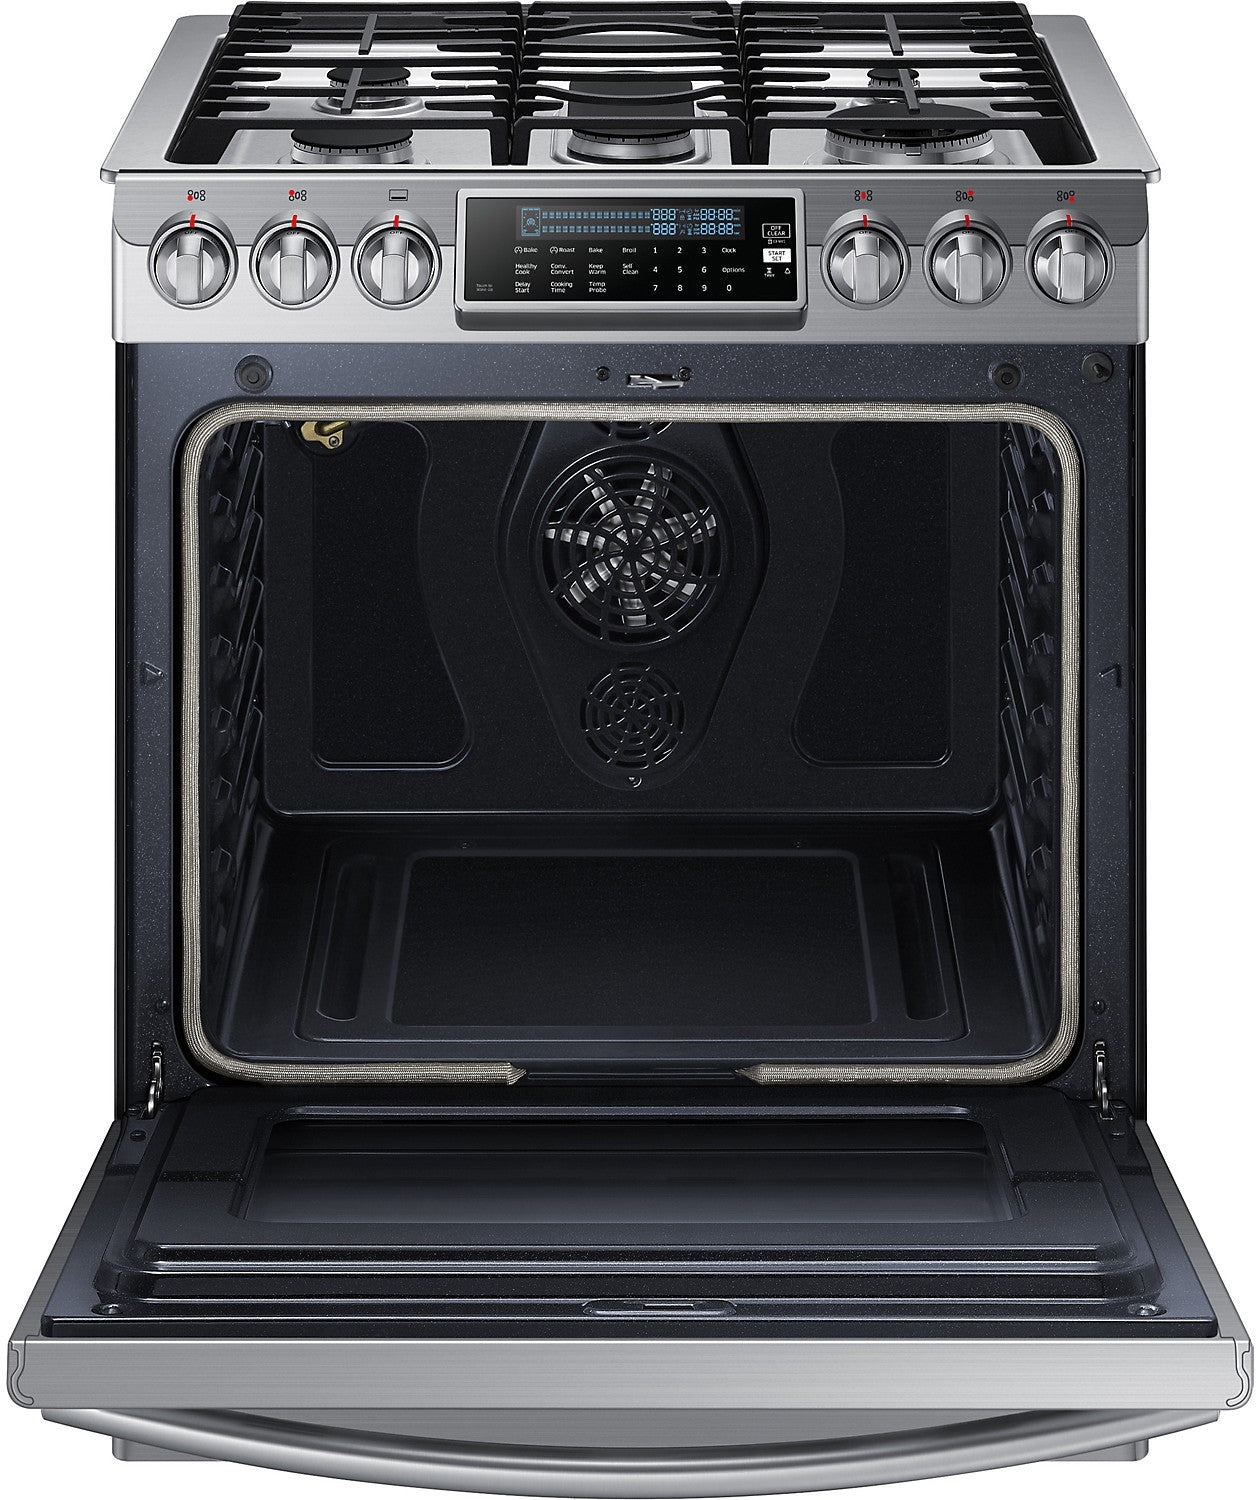 Enjoyable Samsung 5 8 Cu Ft Convection Slide In Gas Range Stainless Steel Download Free Architecture Designs Itiscsunscenecom